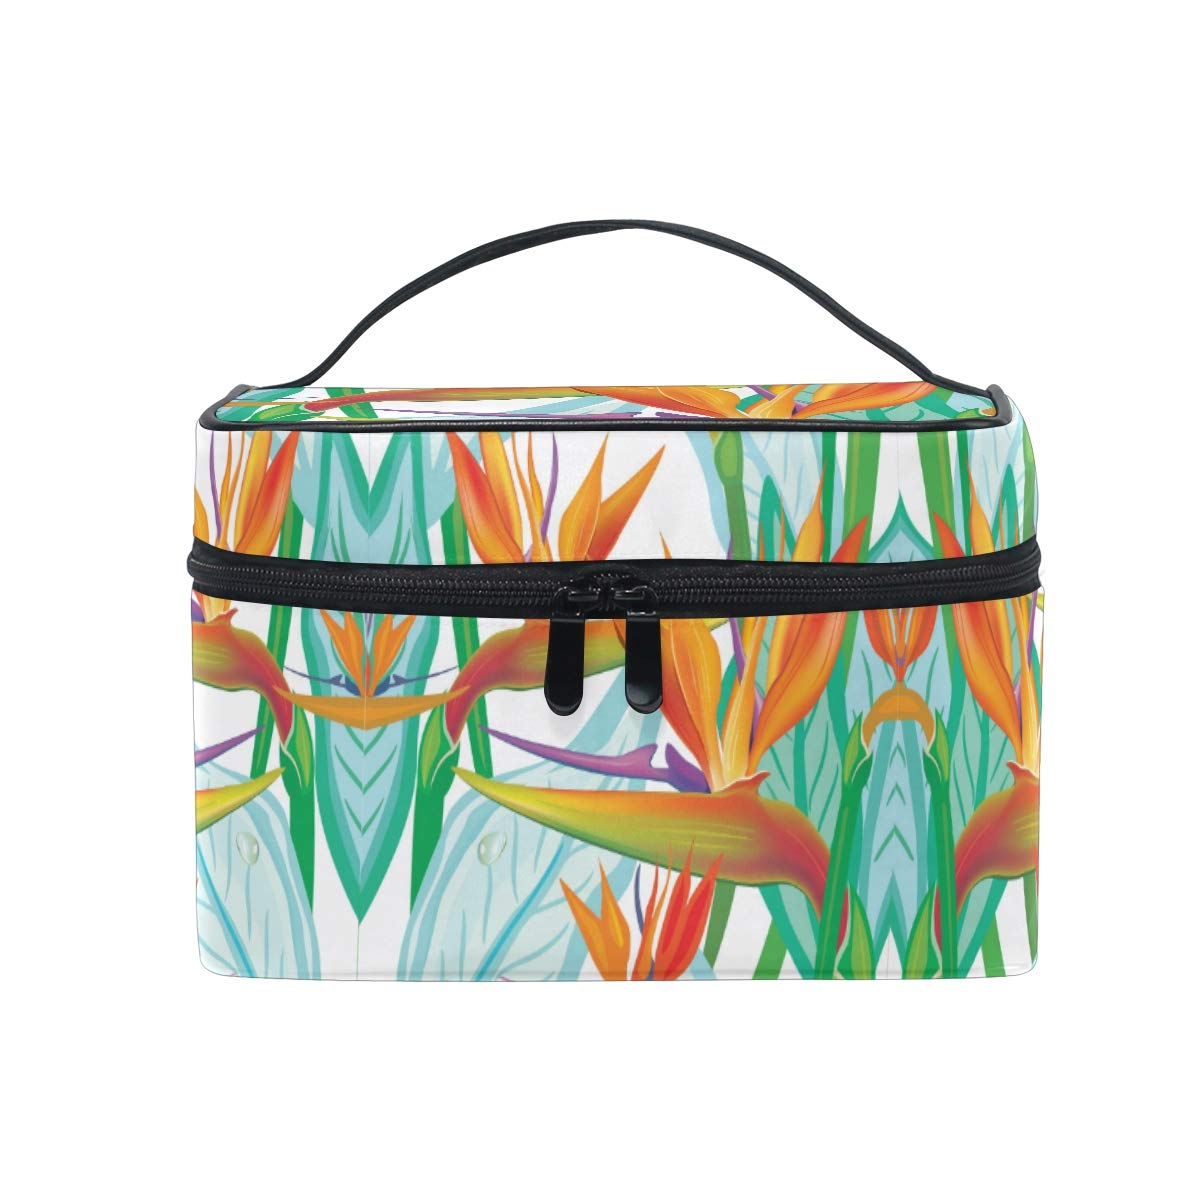 Makeup Bag Birds Of Paradise Flower Travel Cosmetic Bags Organizer Train Case Toiletry Make Up Pouch